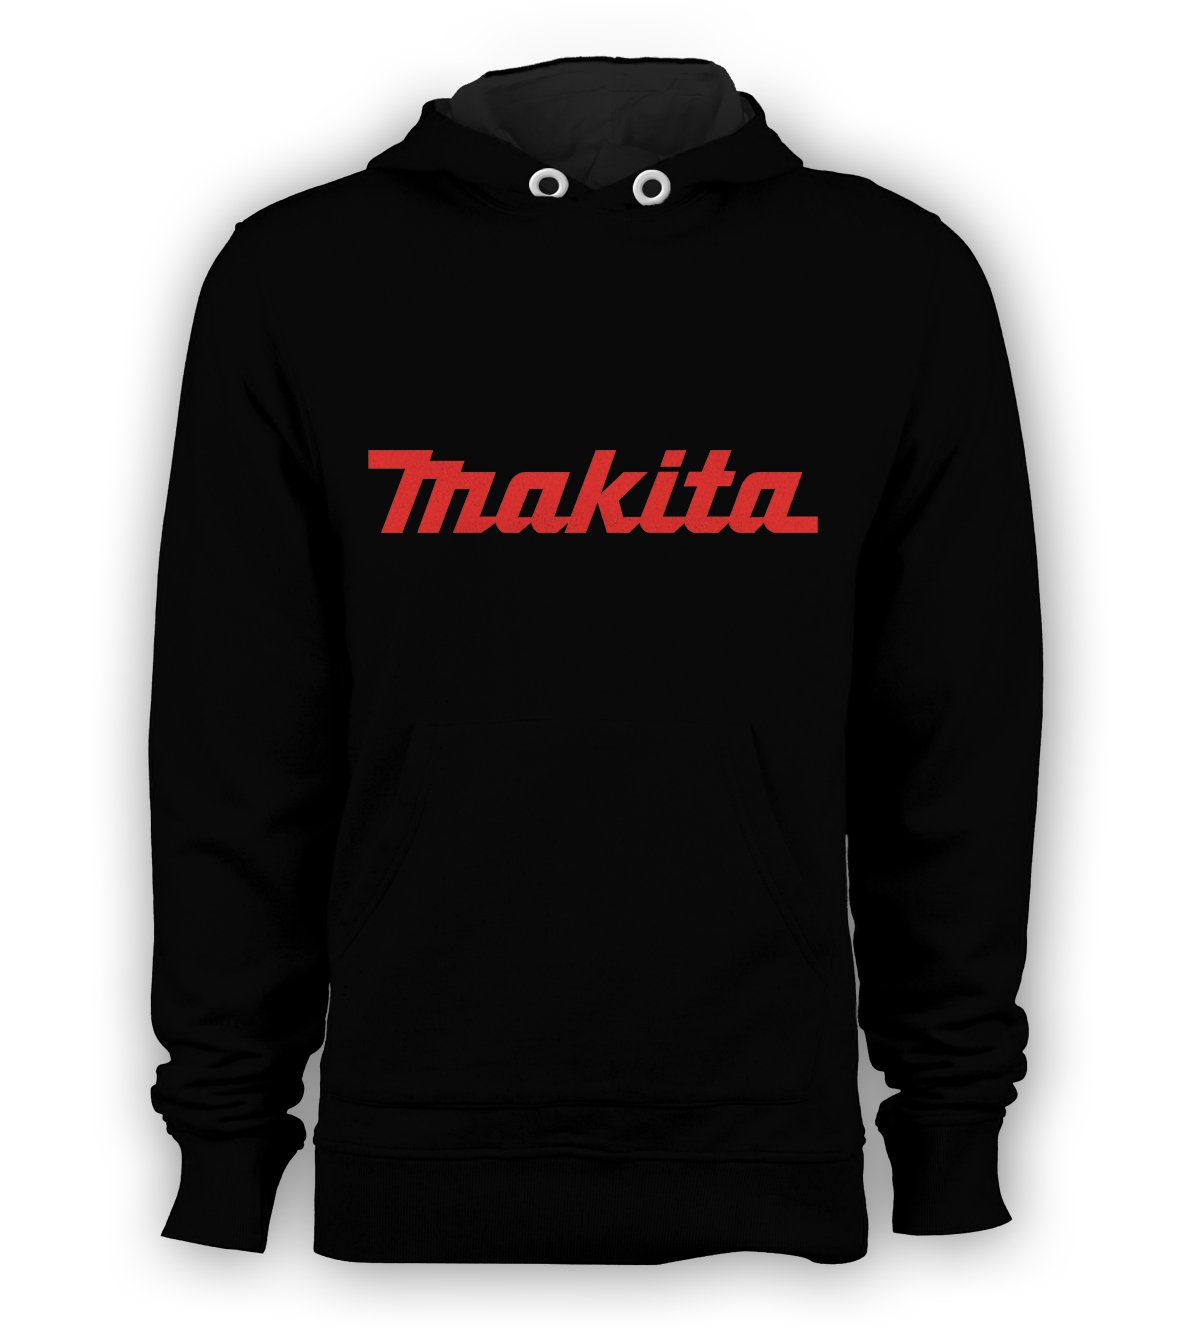 Makita Tool Logo Pullover Hoodie Men Sweatshirts Size S to 3XL New Black